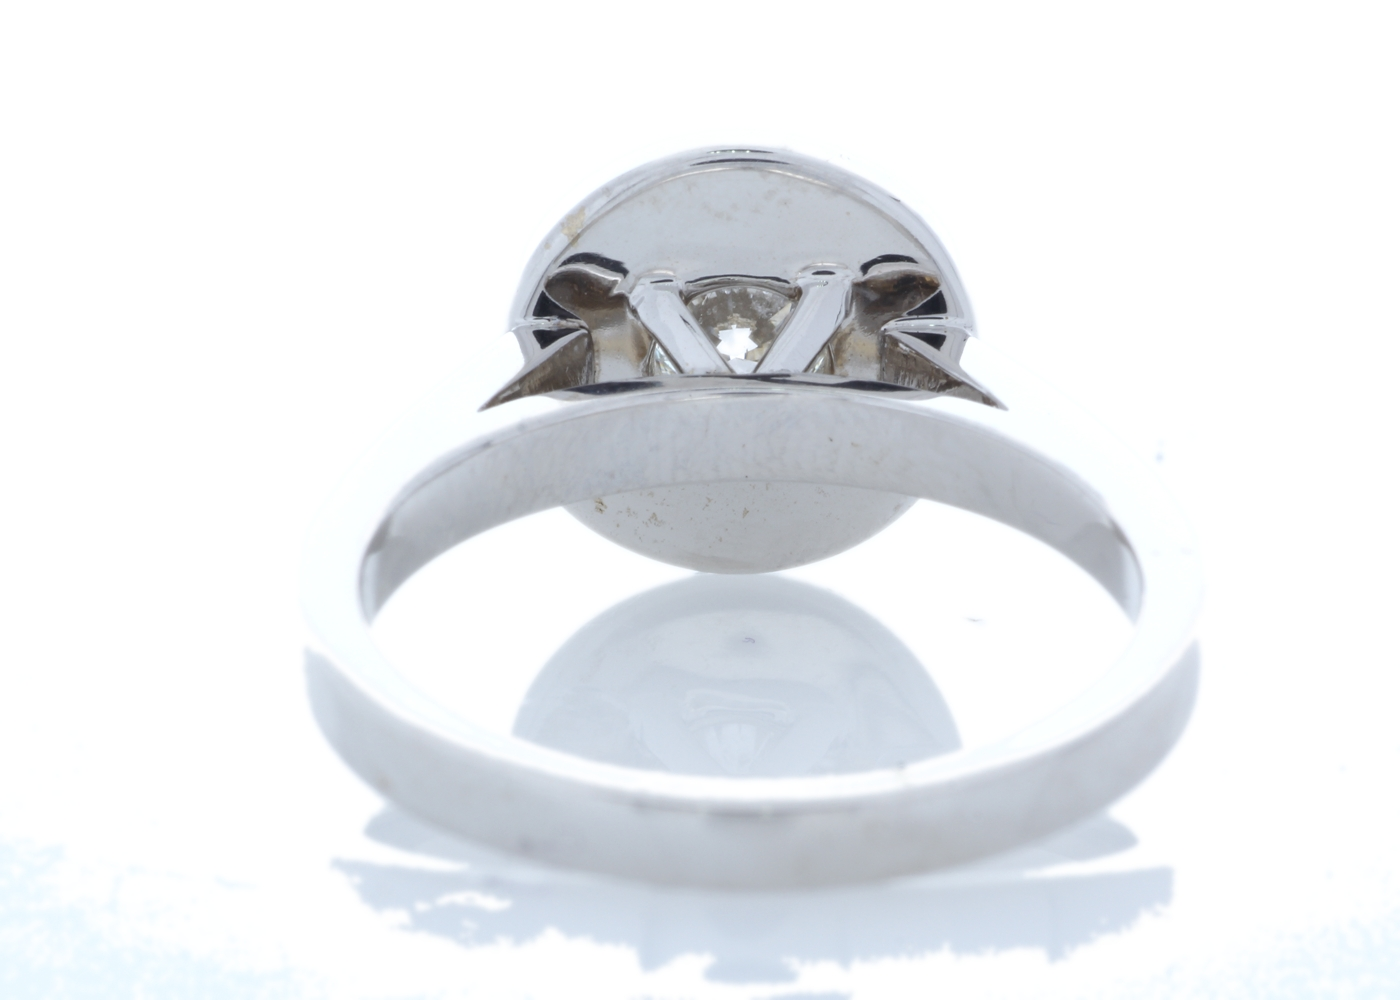 18ct White Gold Single Stone With Halo Setting Ring (0.50) 1.00 Carats - Image 3 of 6